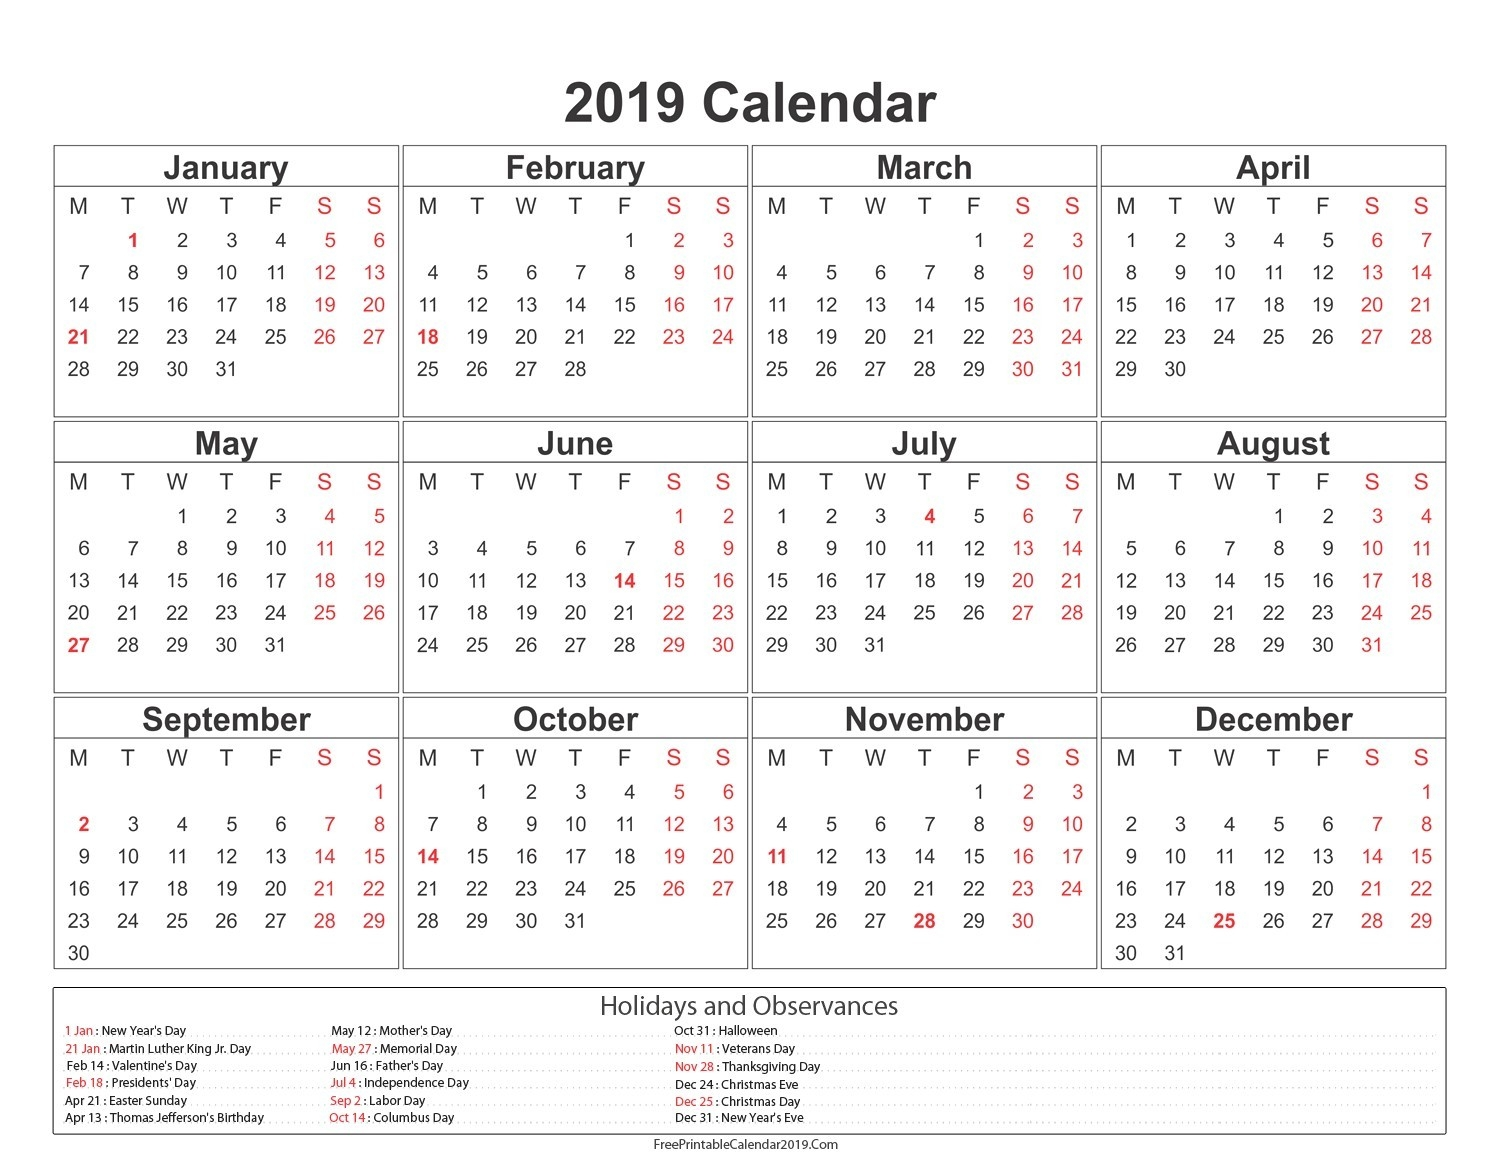 December 2019 January 2020 Calendar Printable | Calendar-January 2020 Calendar In Kannada